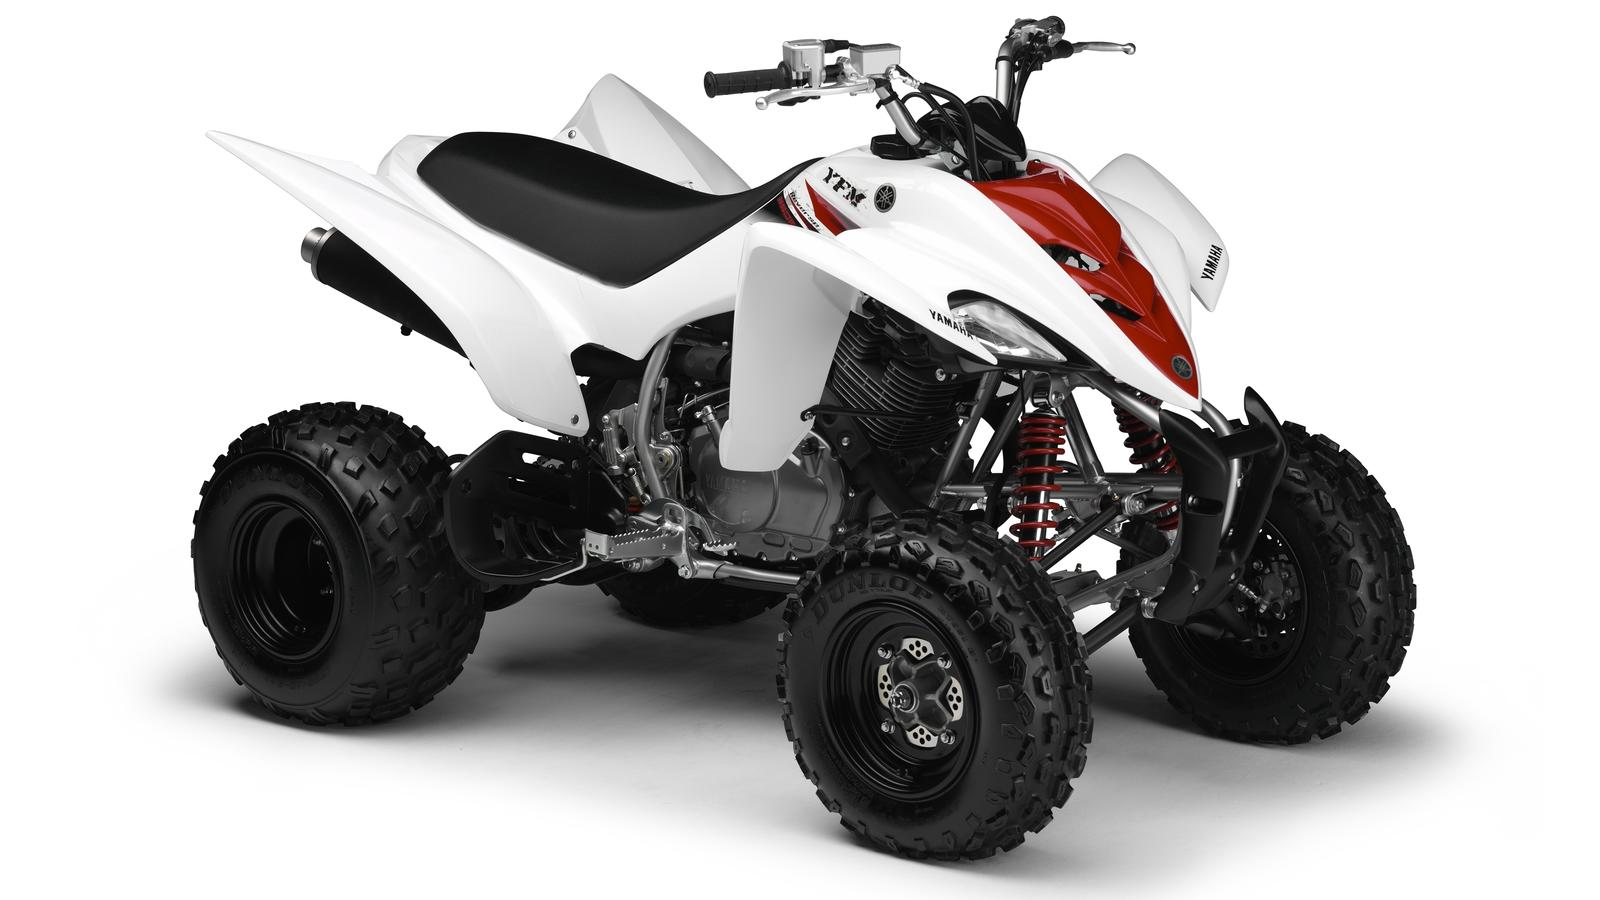 YAMAHA YFM 350 R Raptor  2011 photo 1